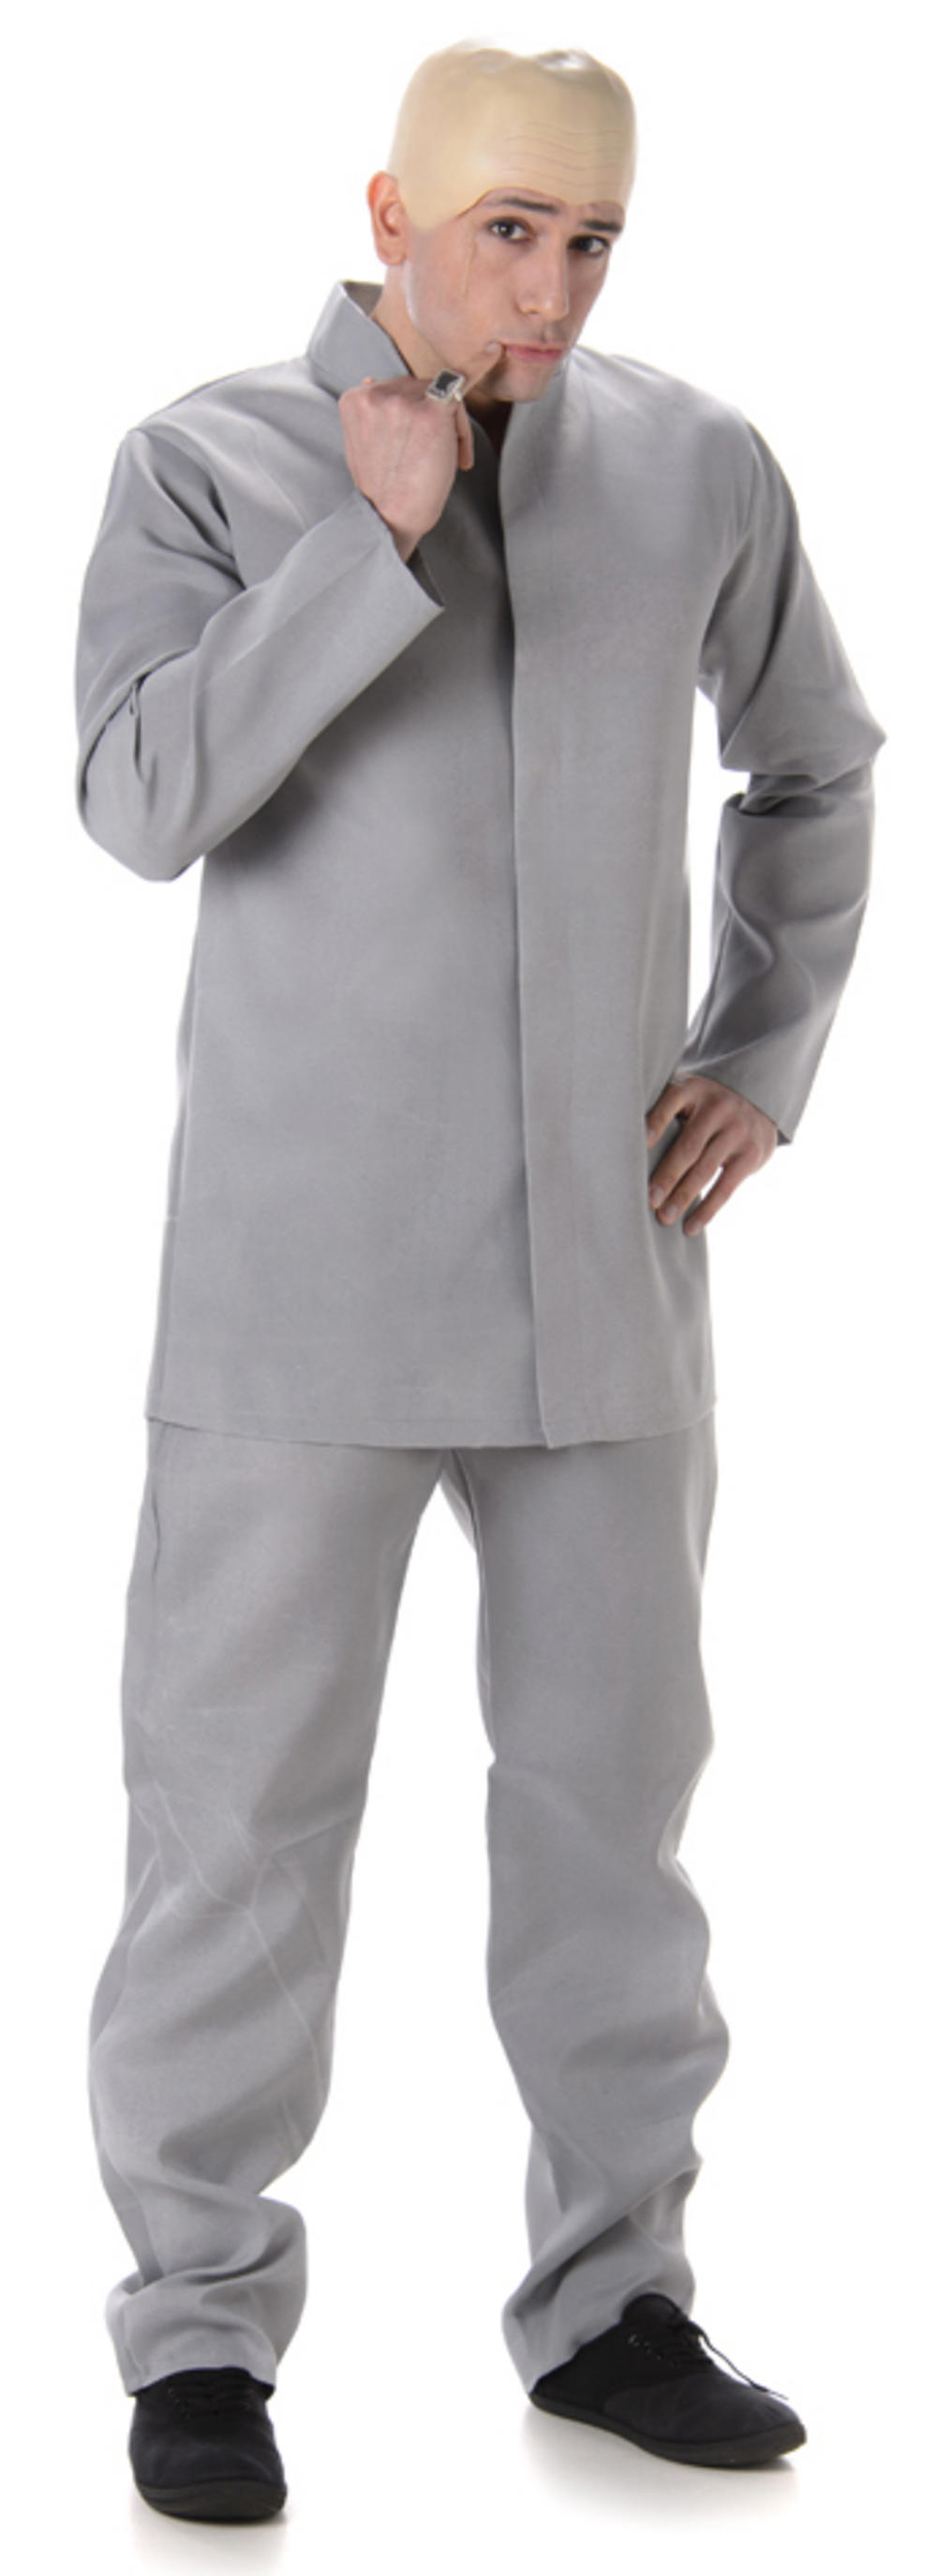 60s Grey Suit Mens Costume